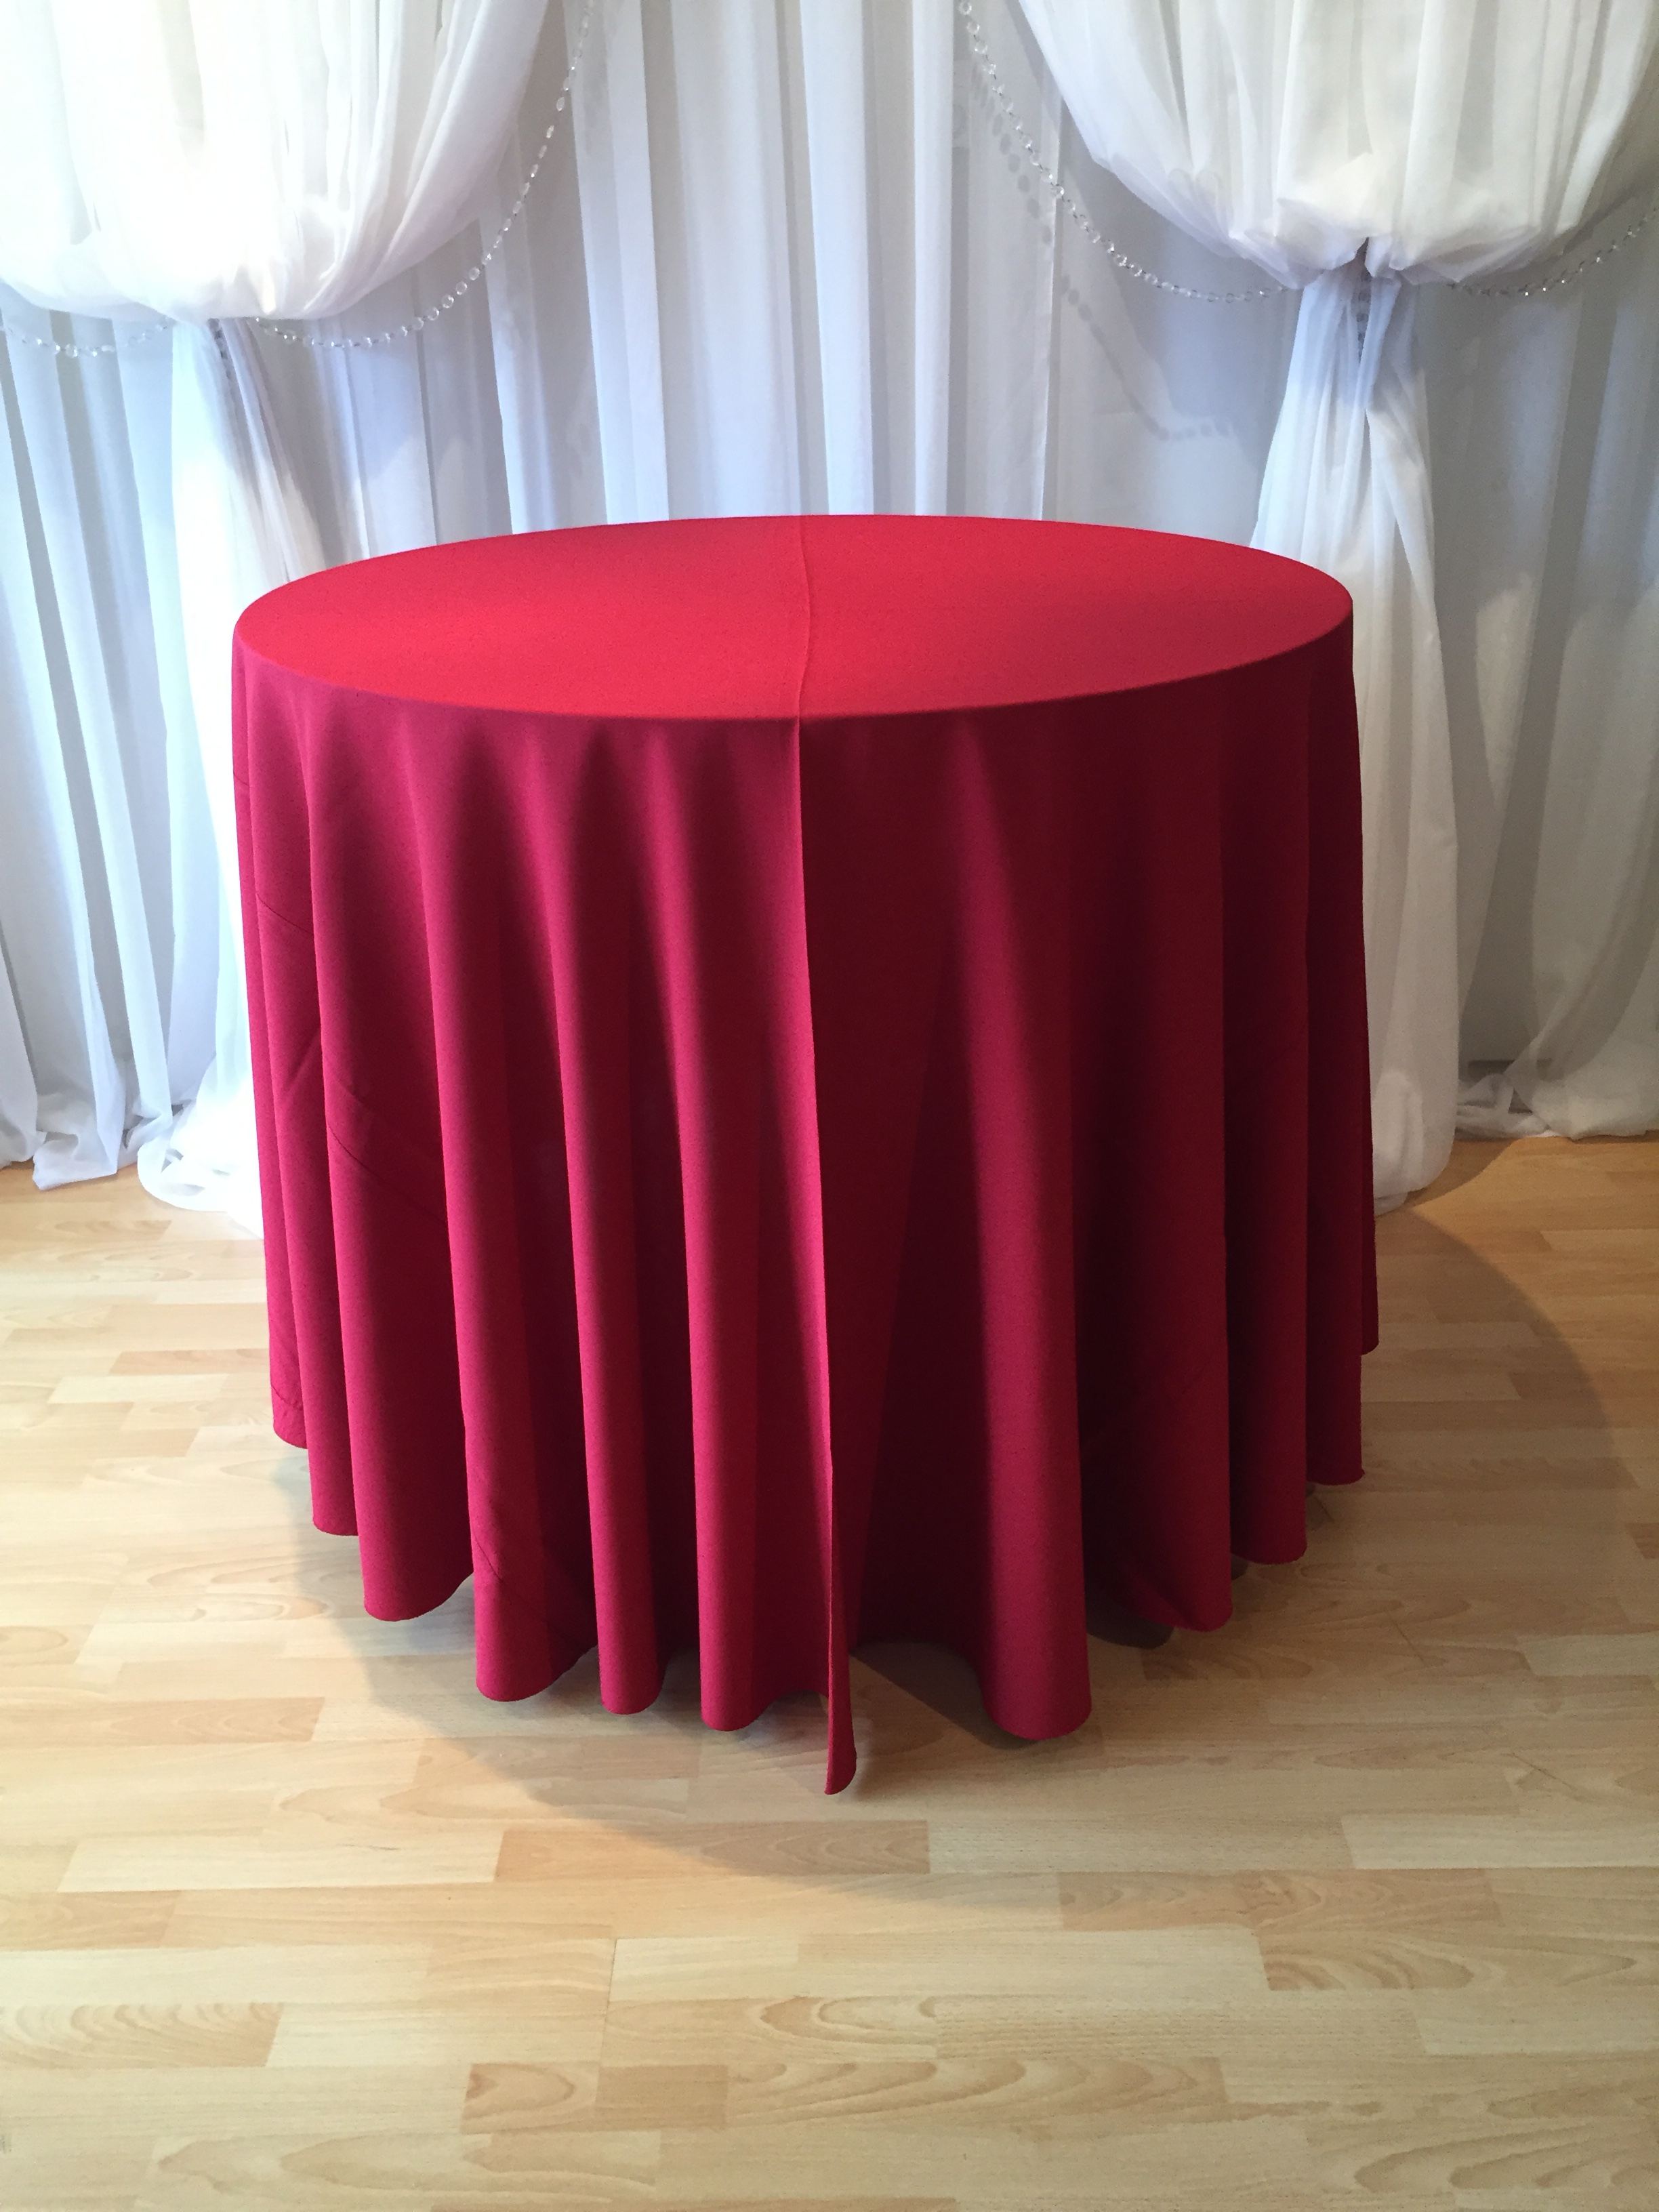 Chair Decor 187 Red Polyester Tablecloth